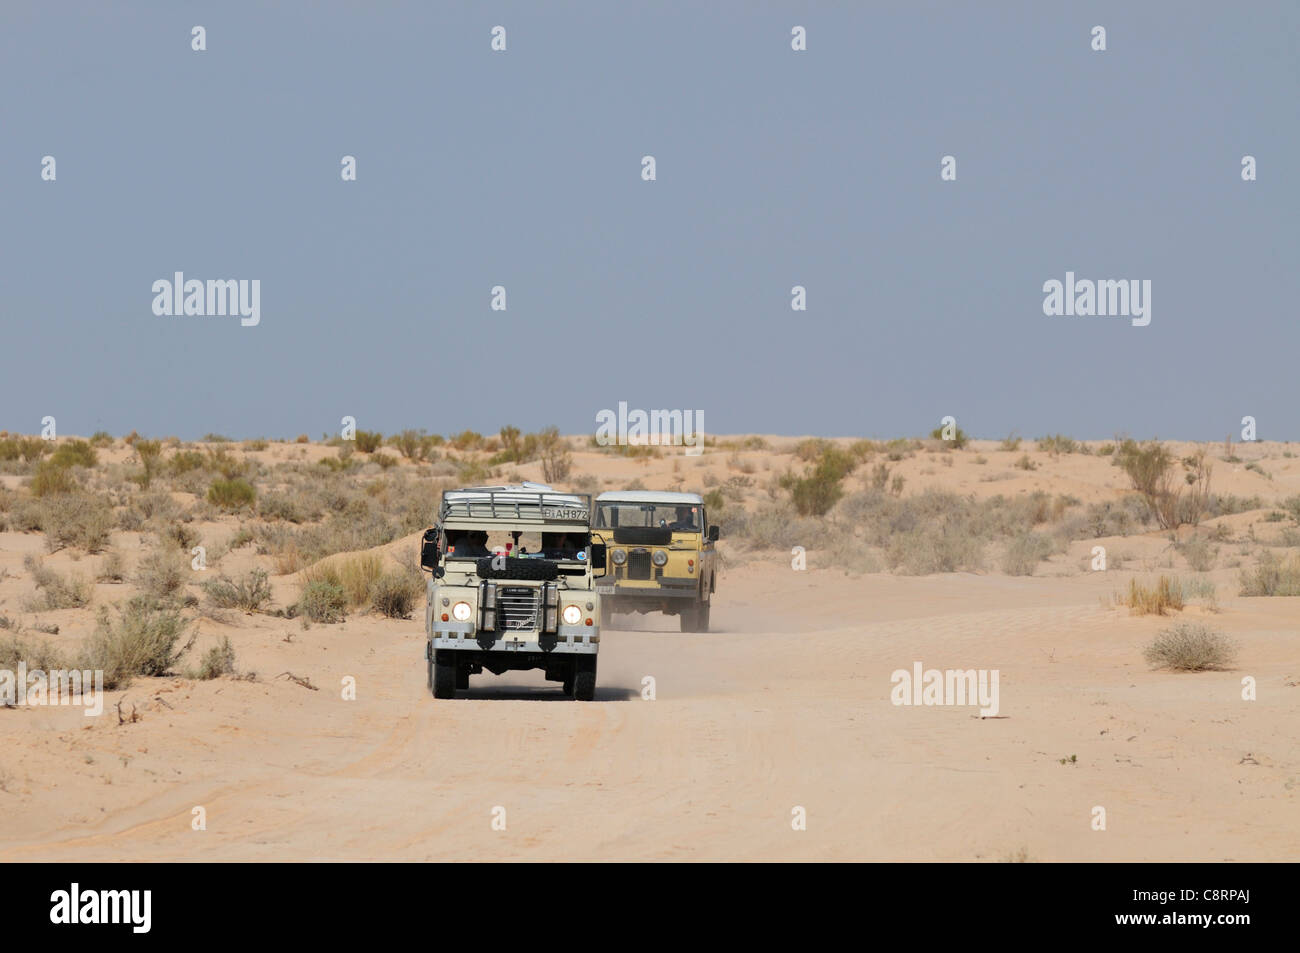 Africa, Tunisia, south of Douz. A group of historic Series Land Rovers on a journey through the desert from Douz - Stock Image